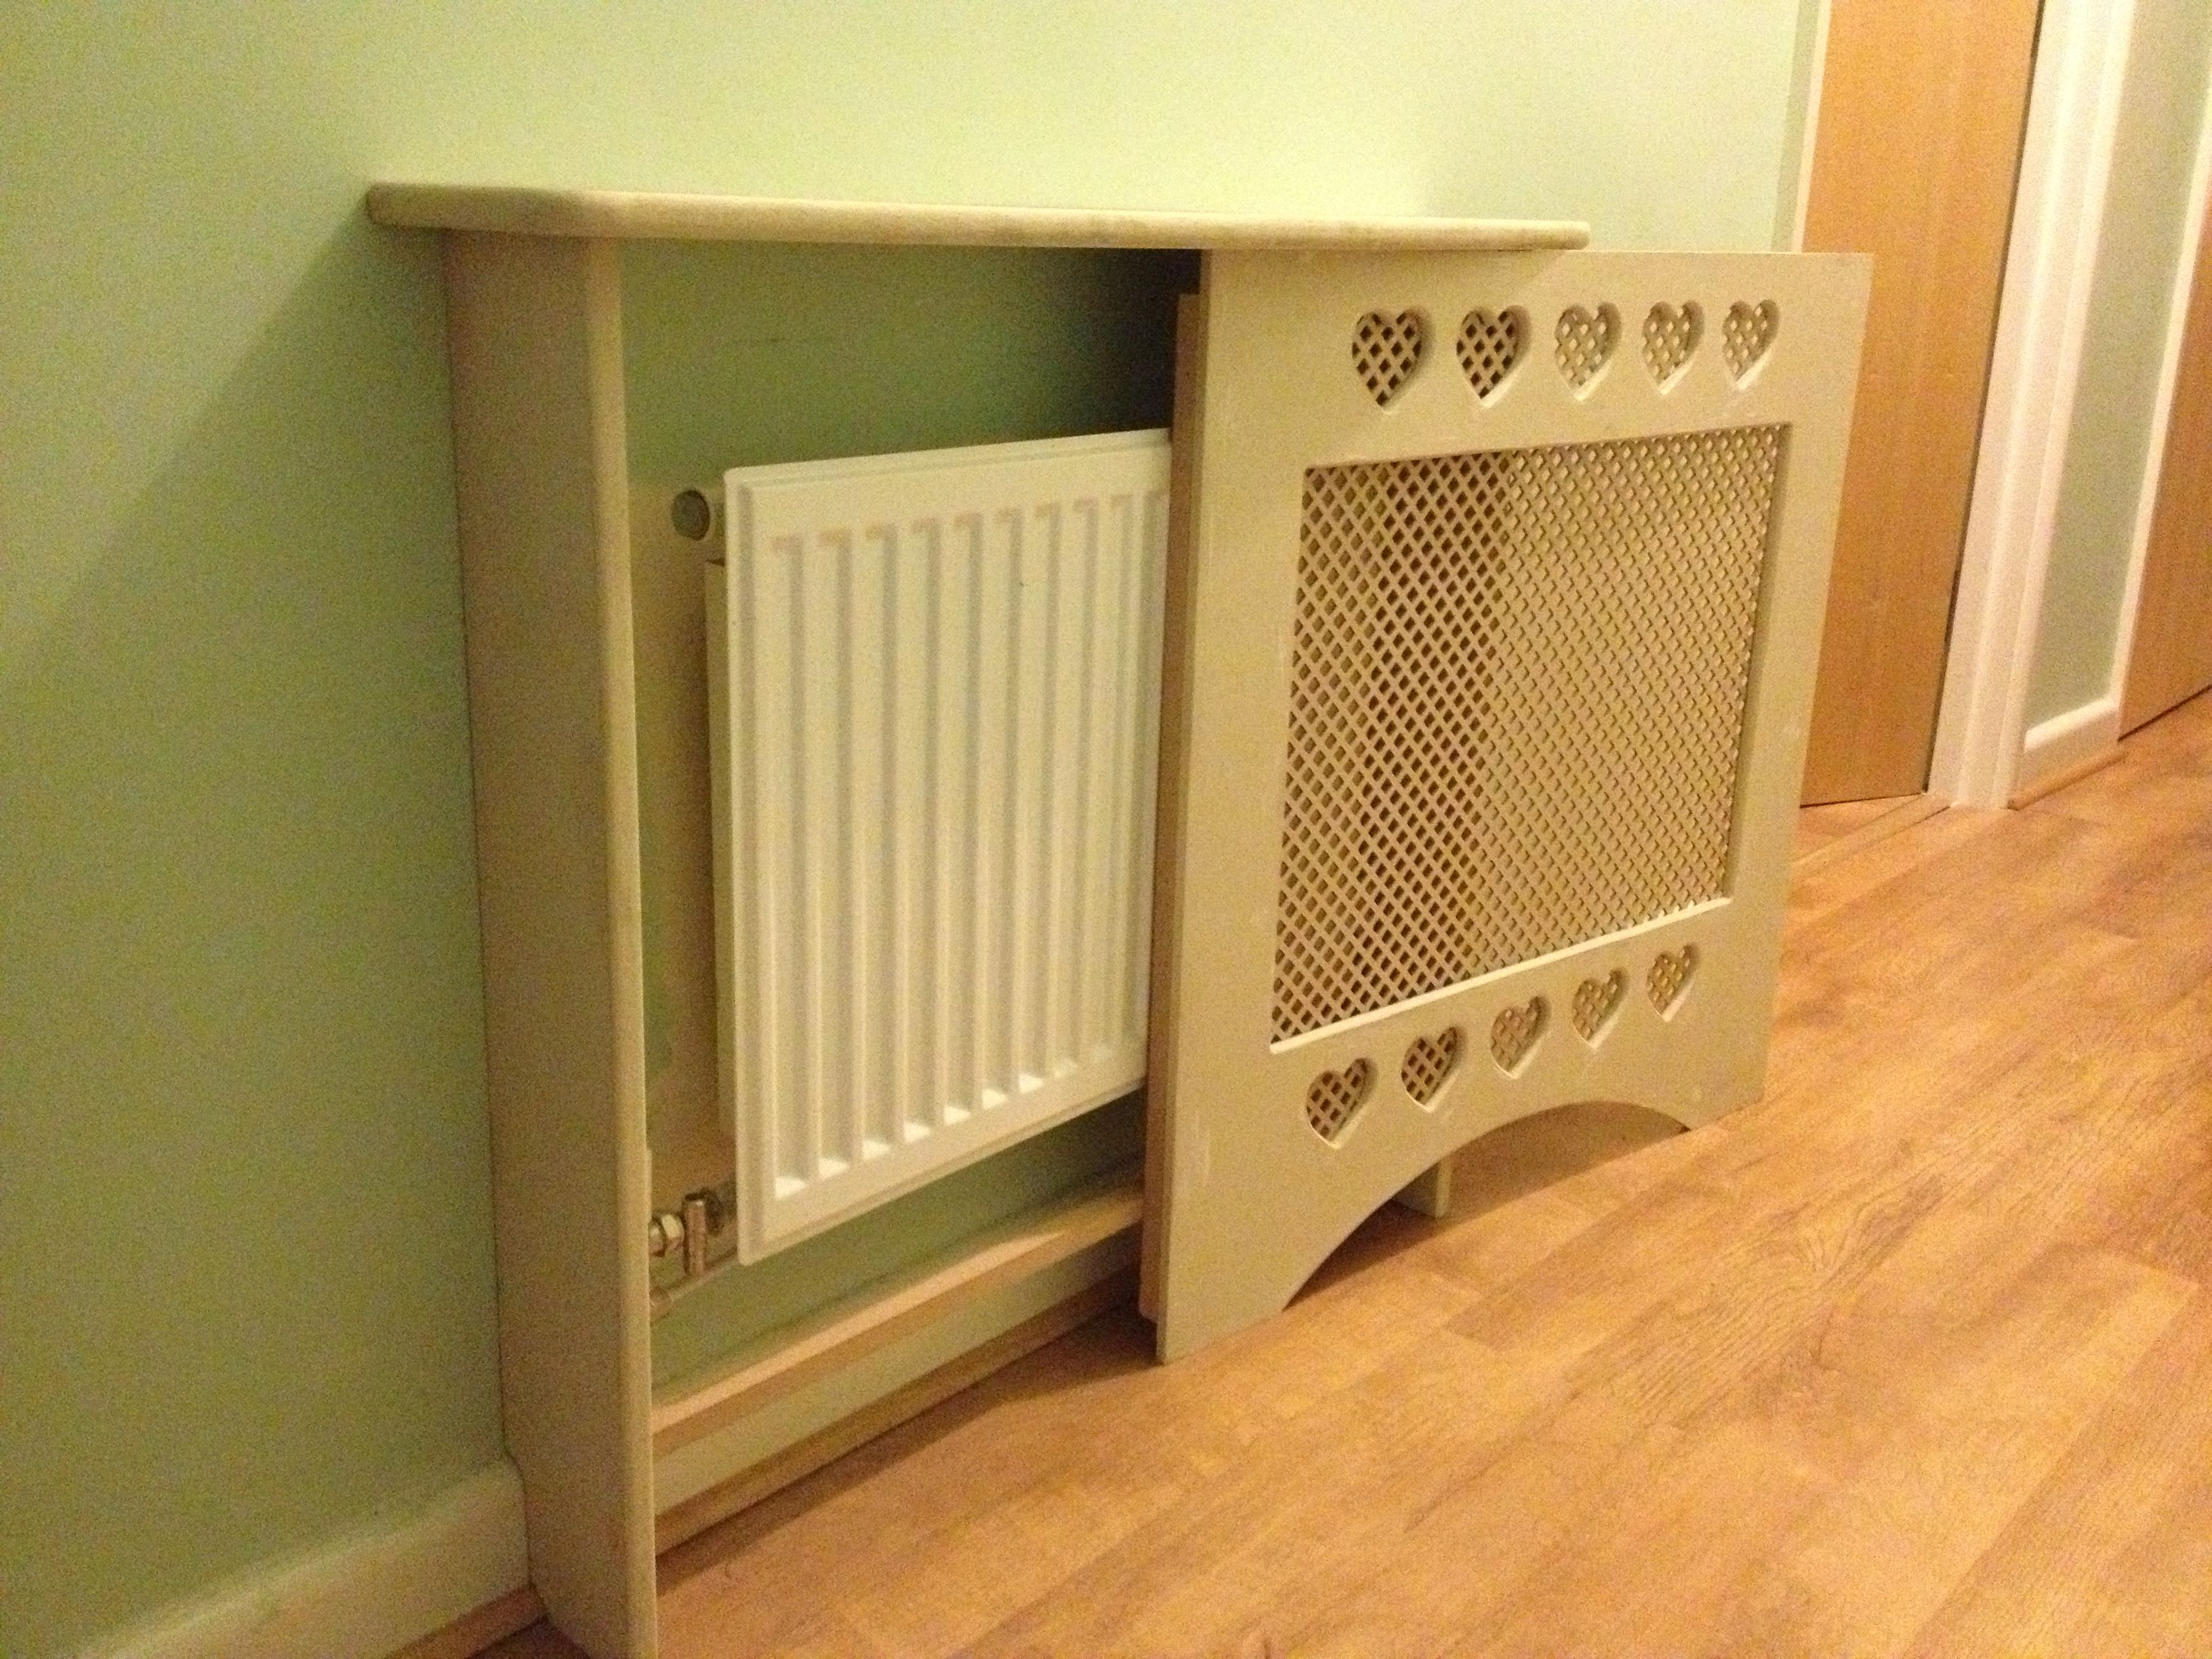 Removable radiator panels allows easy access for maintenance ...